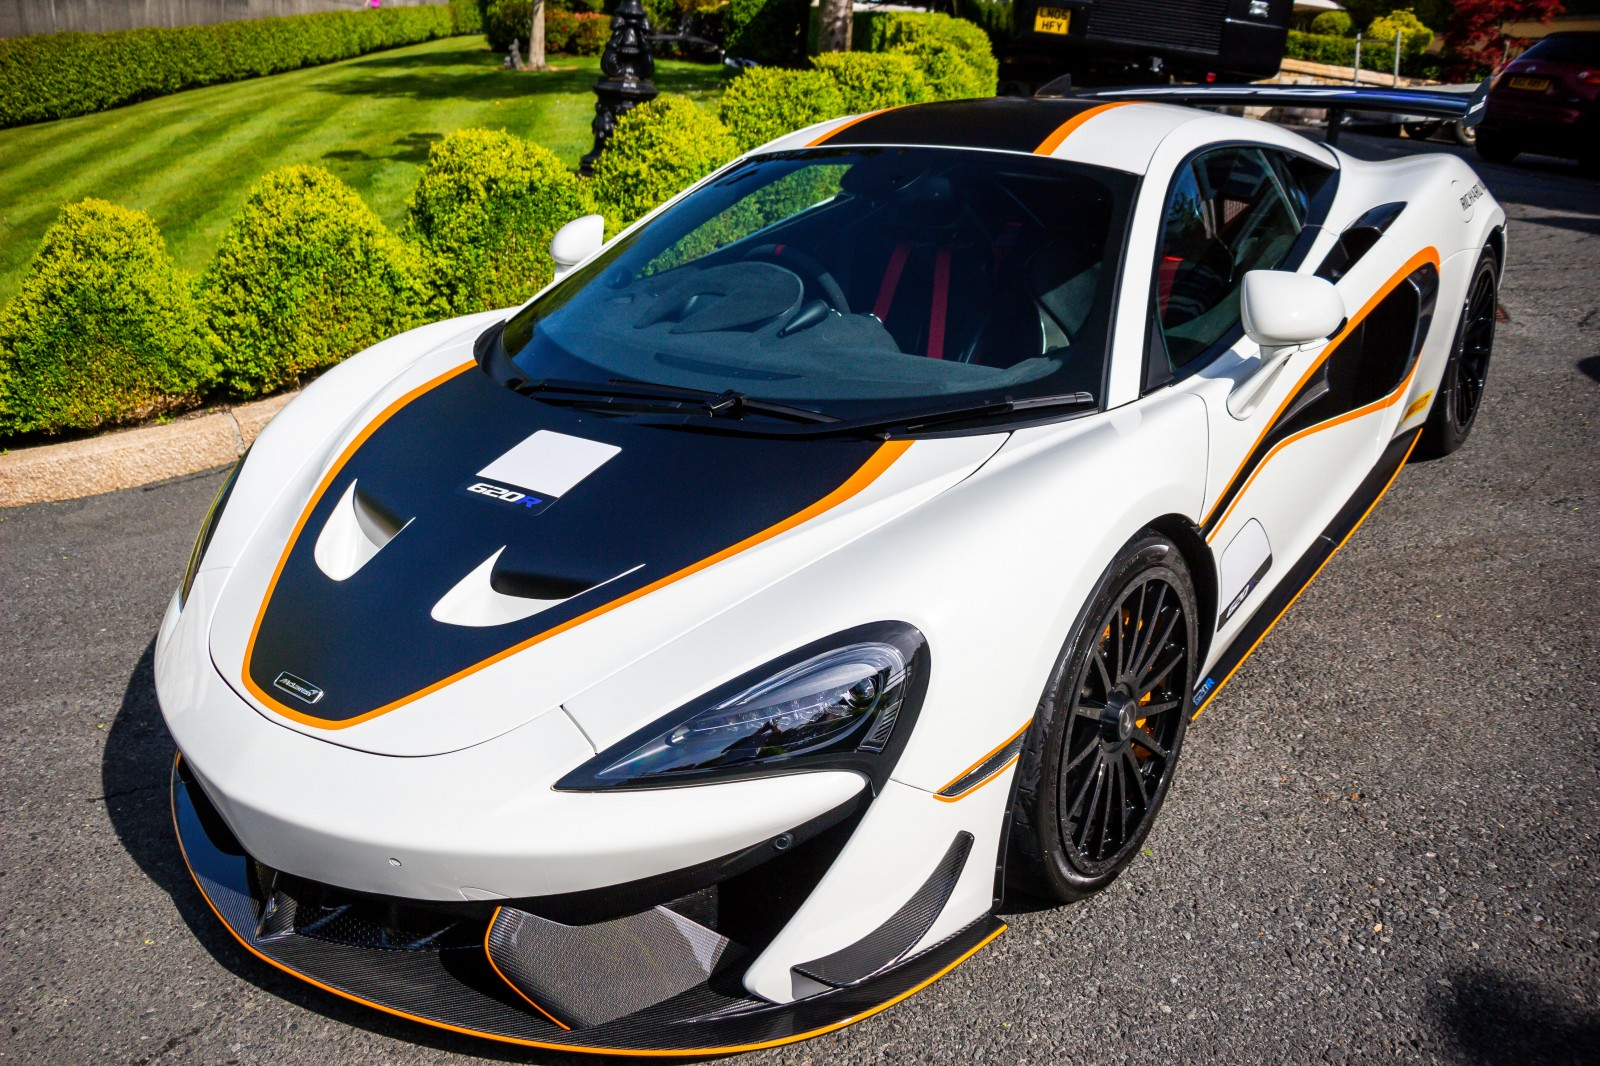 2020 McLaren 620R V8 SSG Petrol Semi Auto – Morgan Cars 9 Mound Road, Warrenpoint, Newry BT34 3LW, UK full